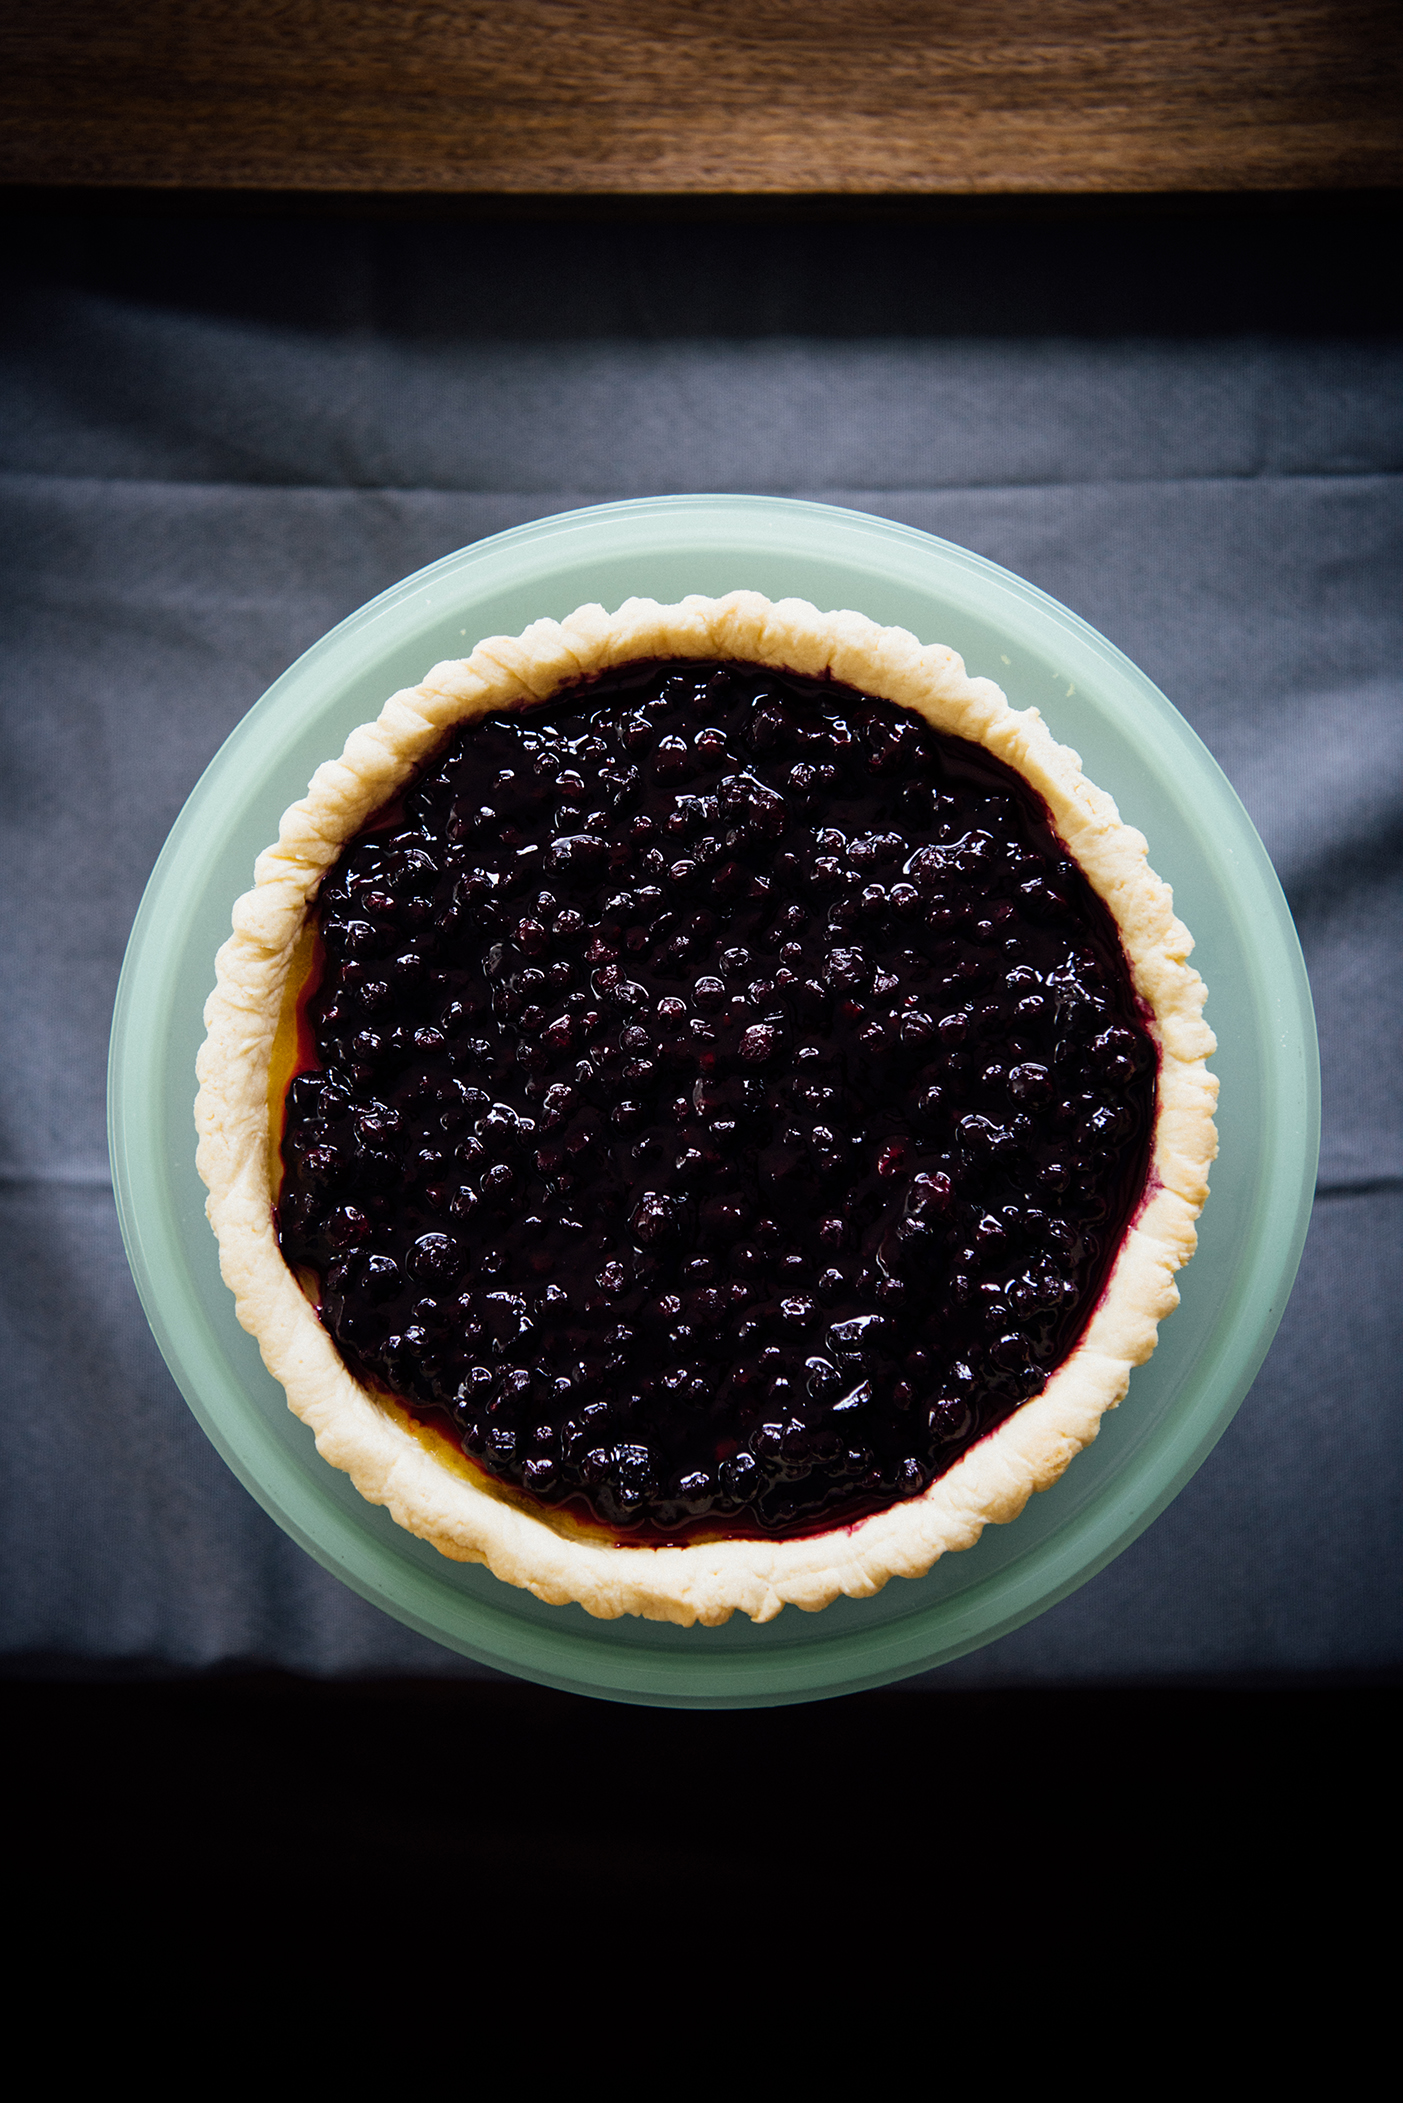 makrut lime leaf scented blueberry and lemon curd tart | Nik Sharma